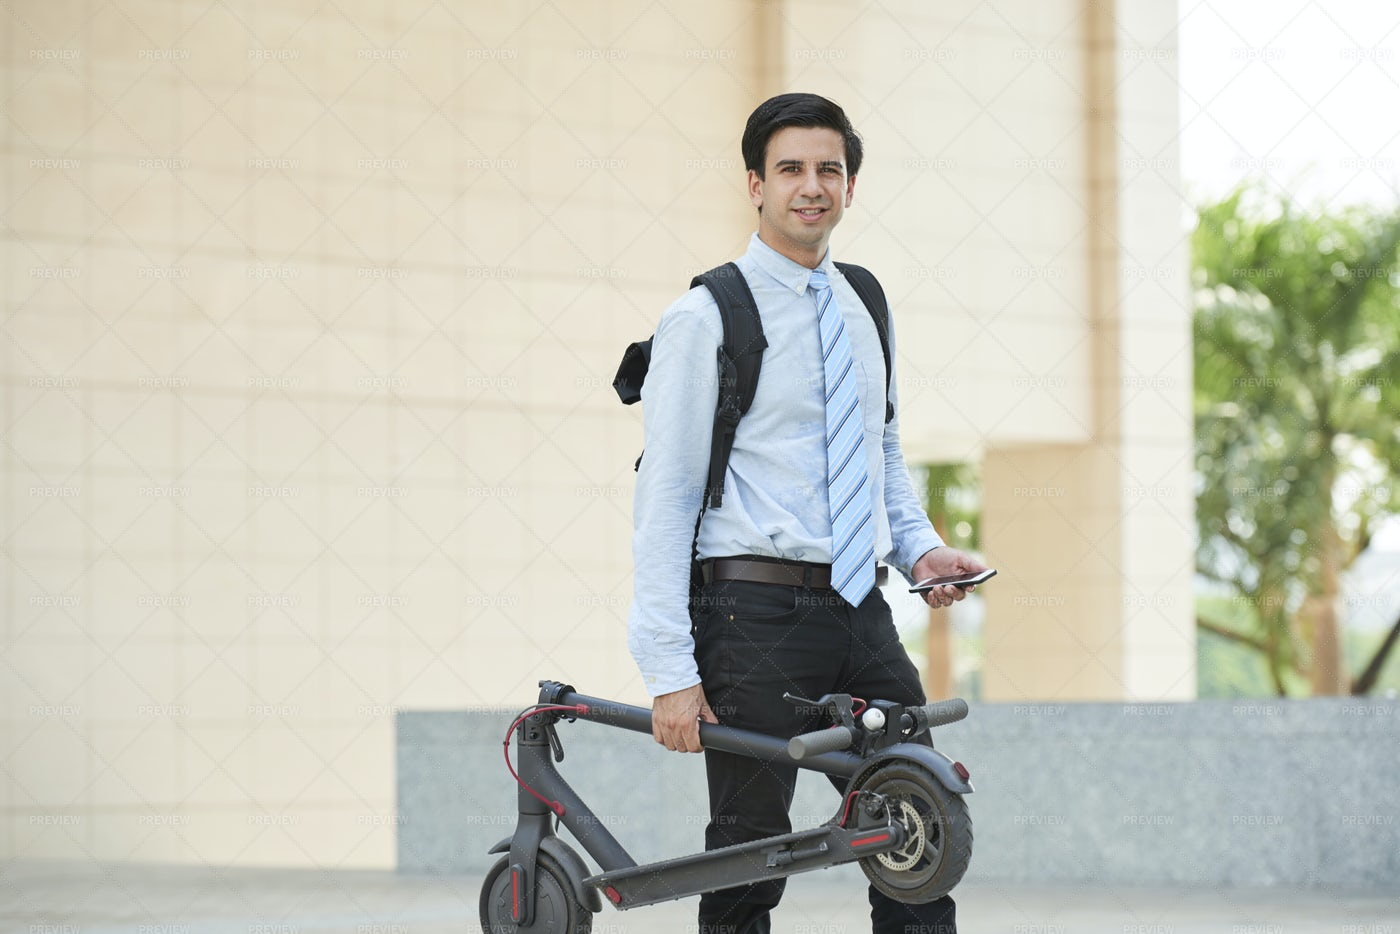 Man Is Going To Work On Scooter: Stock Photos